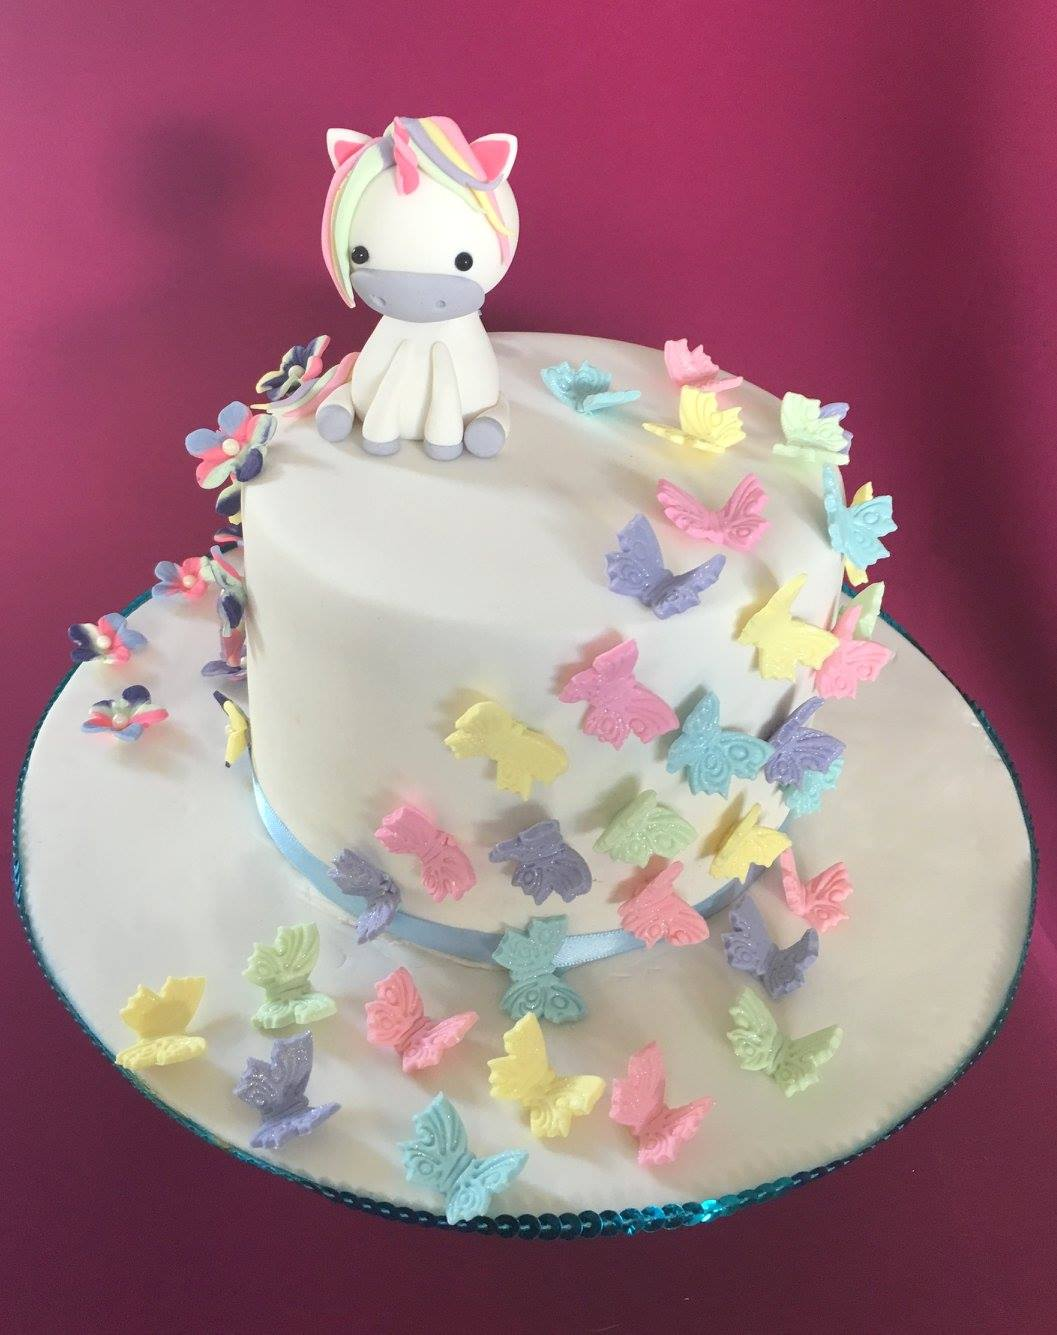 Cute unicorn cake